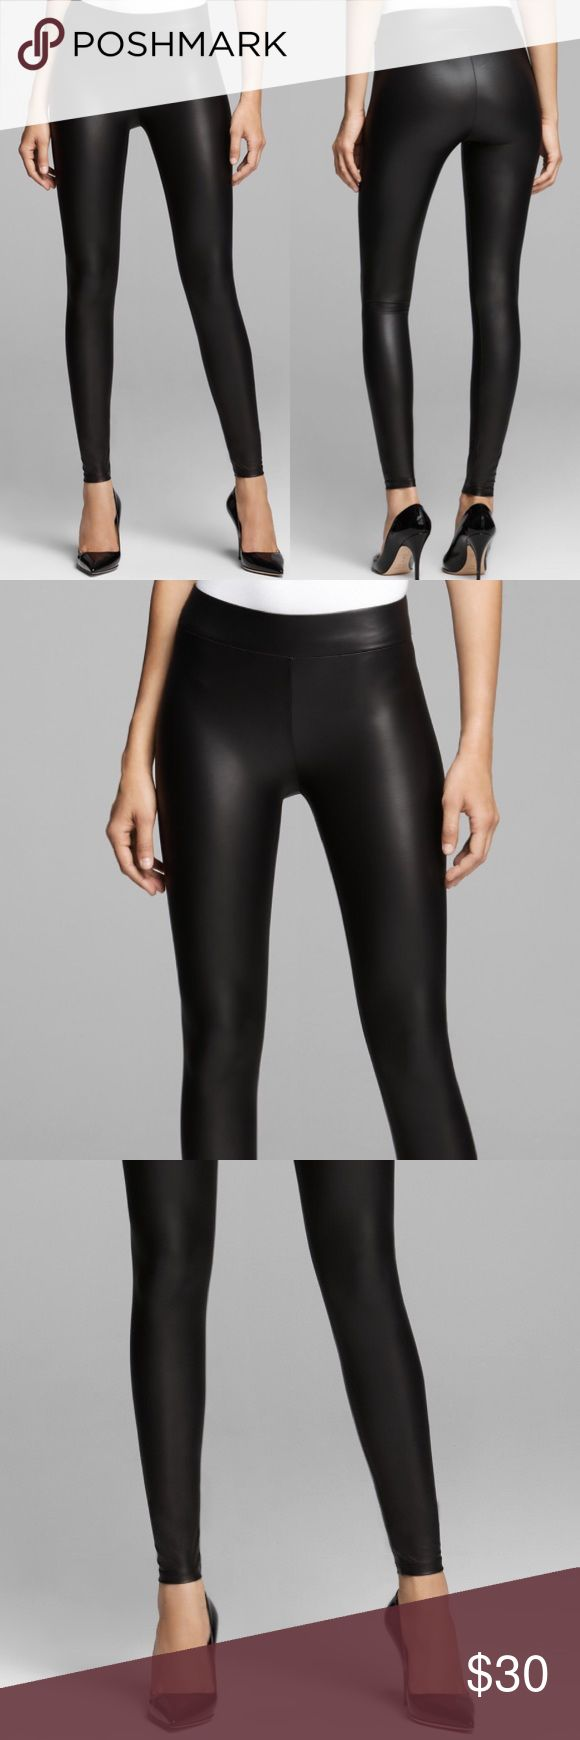 50% OFF ‼️ NWT Guess Matte Wet Leggings, Jet Black These leggings are to die for. I am so in love with these but sadly they do not fit me (if anyone has a small or medium let me know ;) Instantly give any look a rocker edge with these smooth faux-leather leggings. They stretch and move with you, and the wide elastic waistband gives you a flattering fit. Guess Pants Leggings